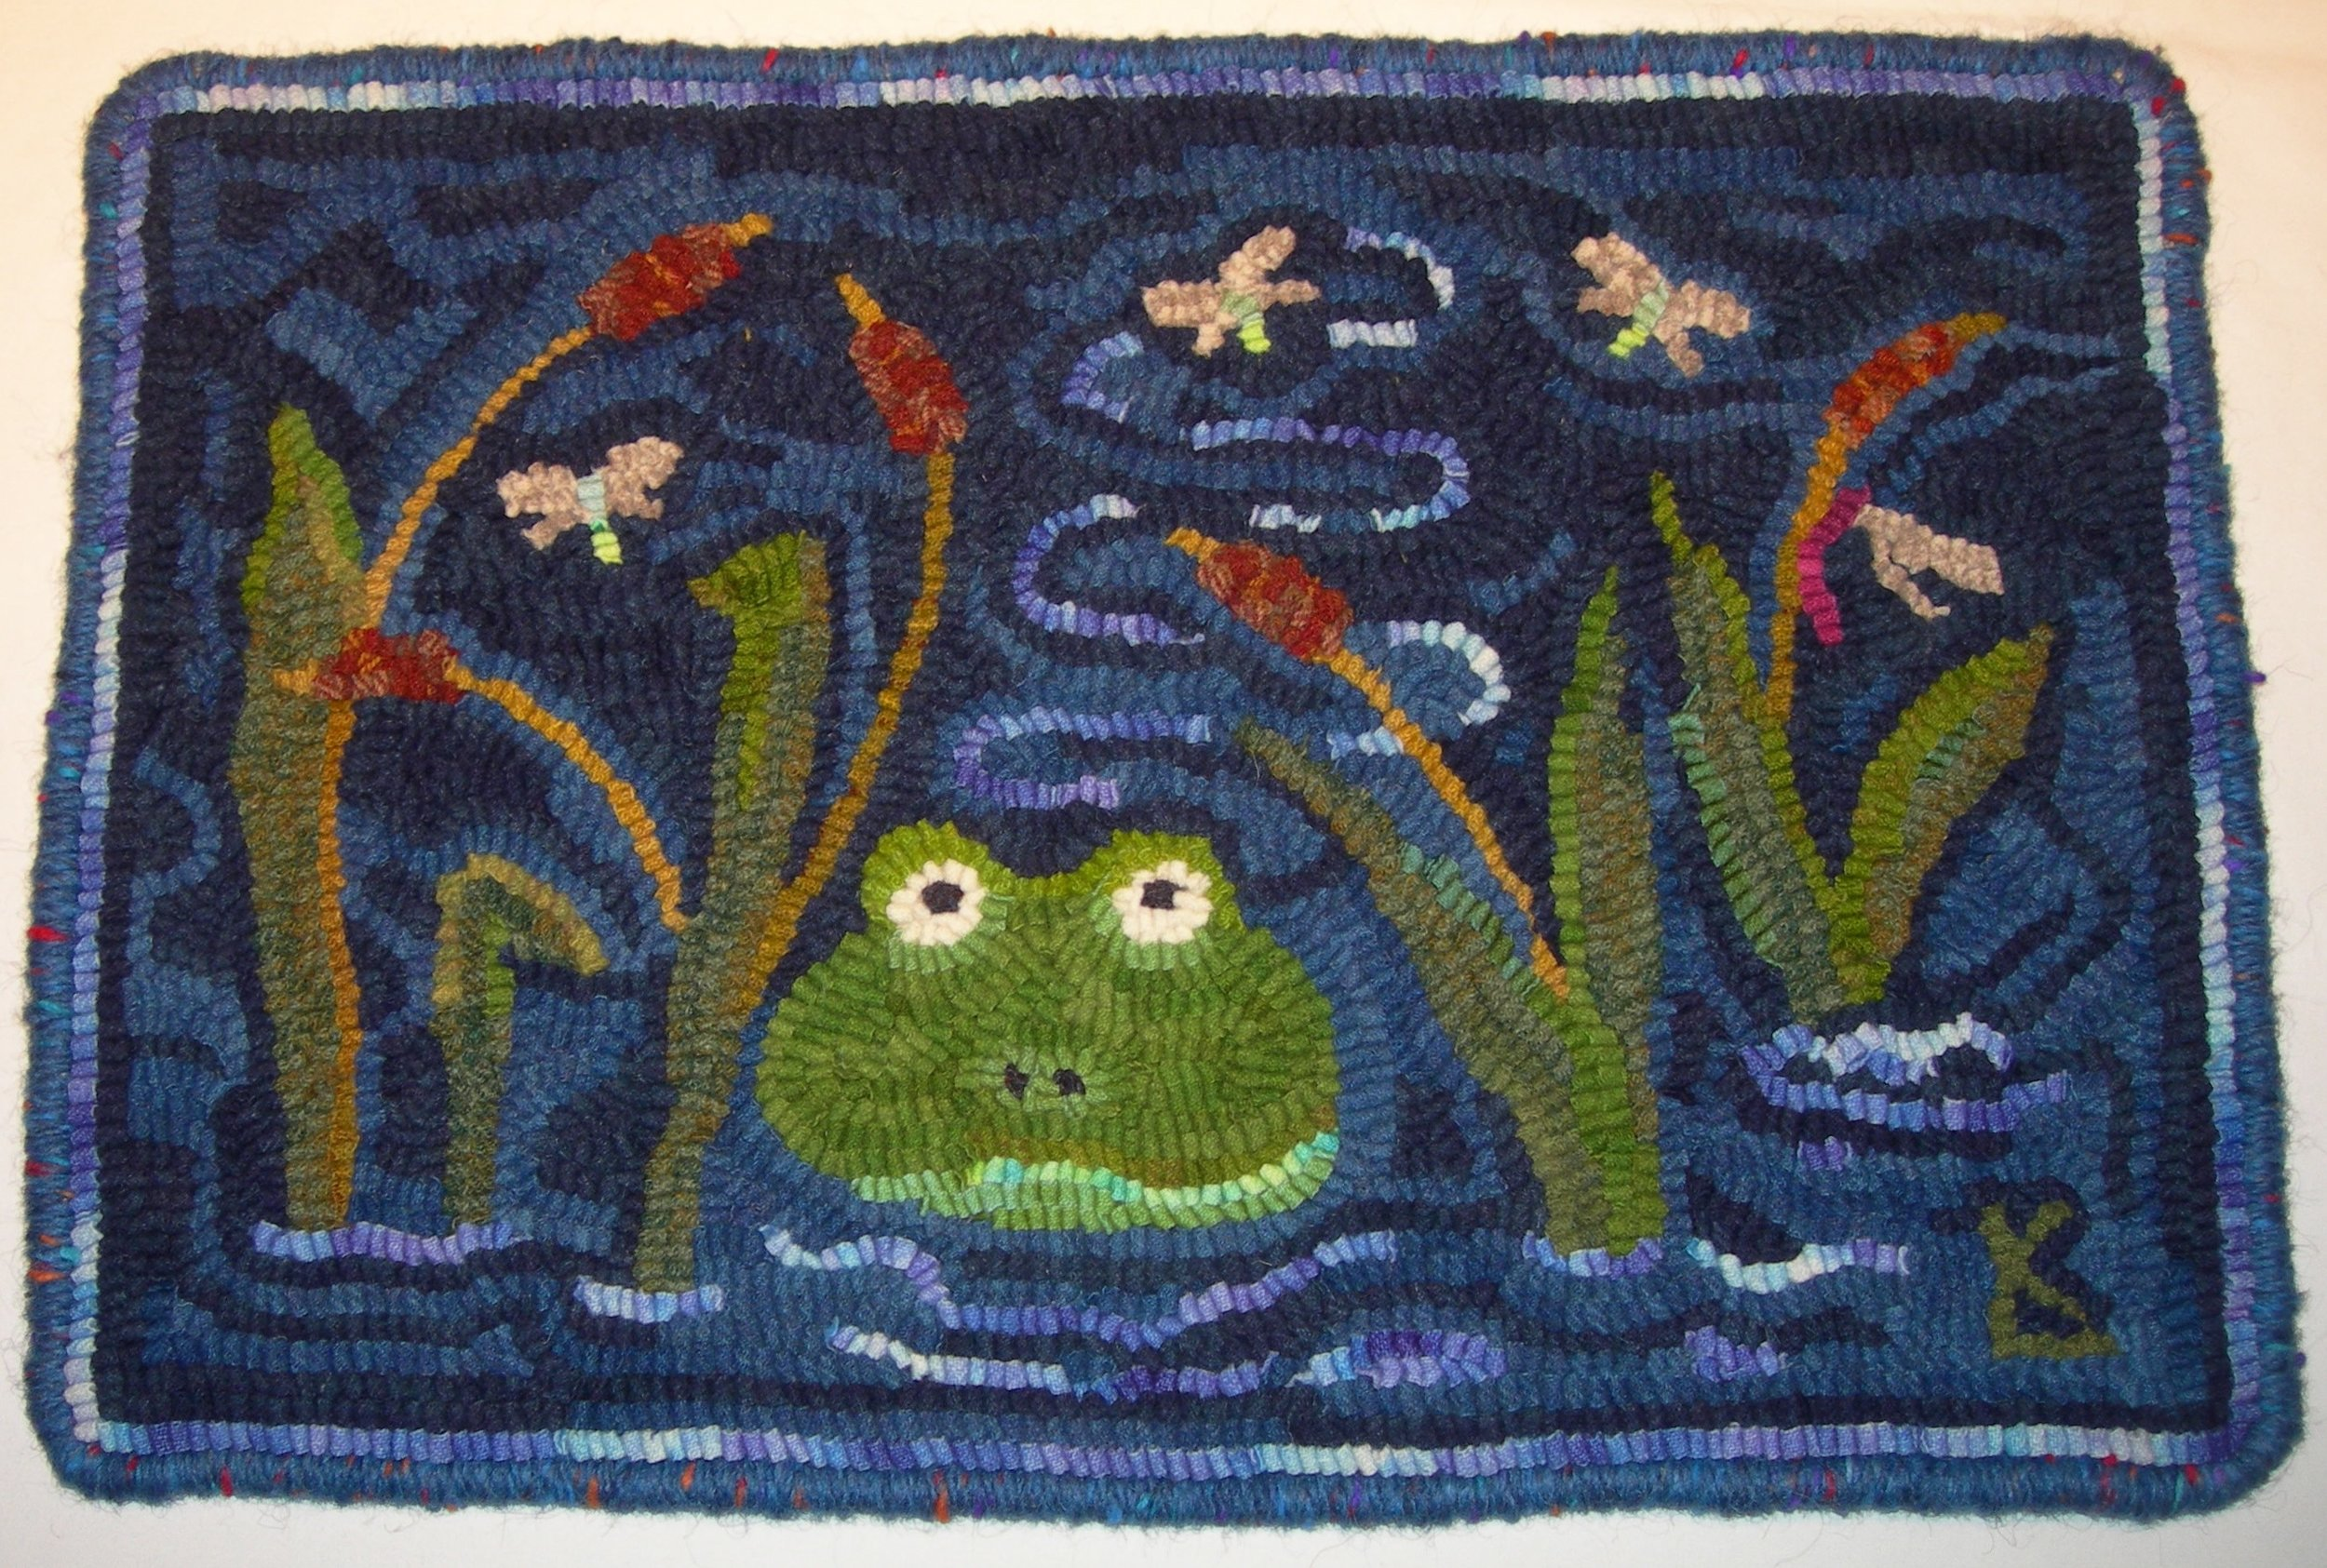 """Frogger - finished rug 15 1/2"""" x 22 1/2"""" - price upon request"""